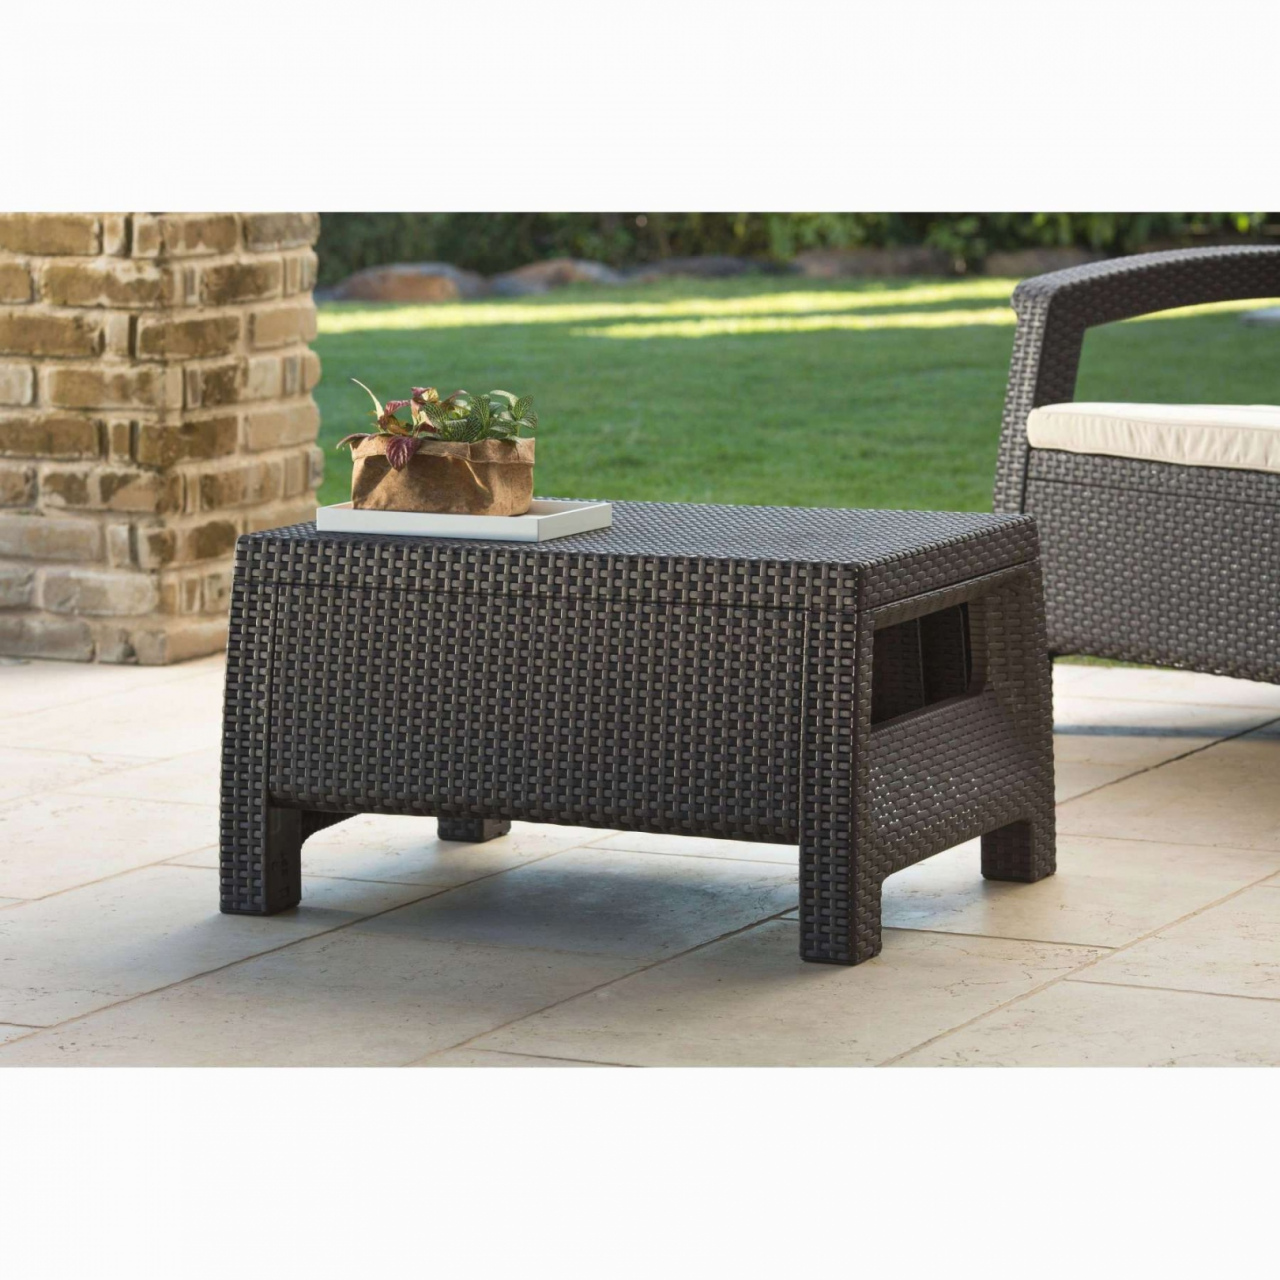 porch furniture rattan porch furniture basic wicker outdoor sofa 0d patio chairs durch porch furniture